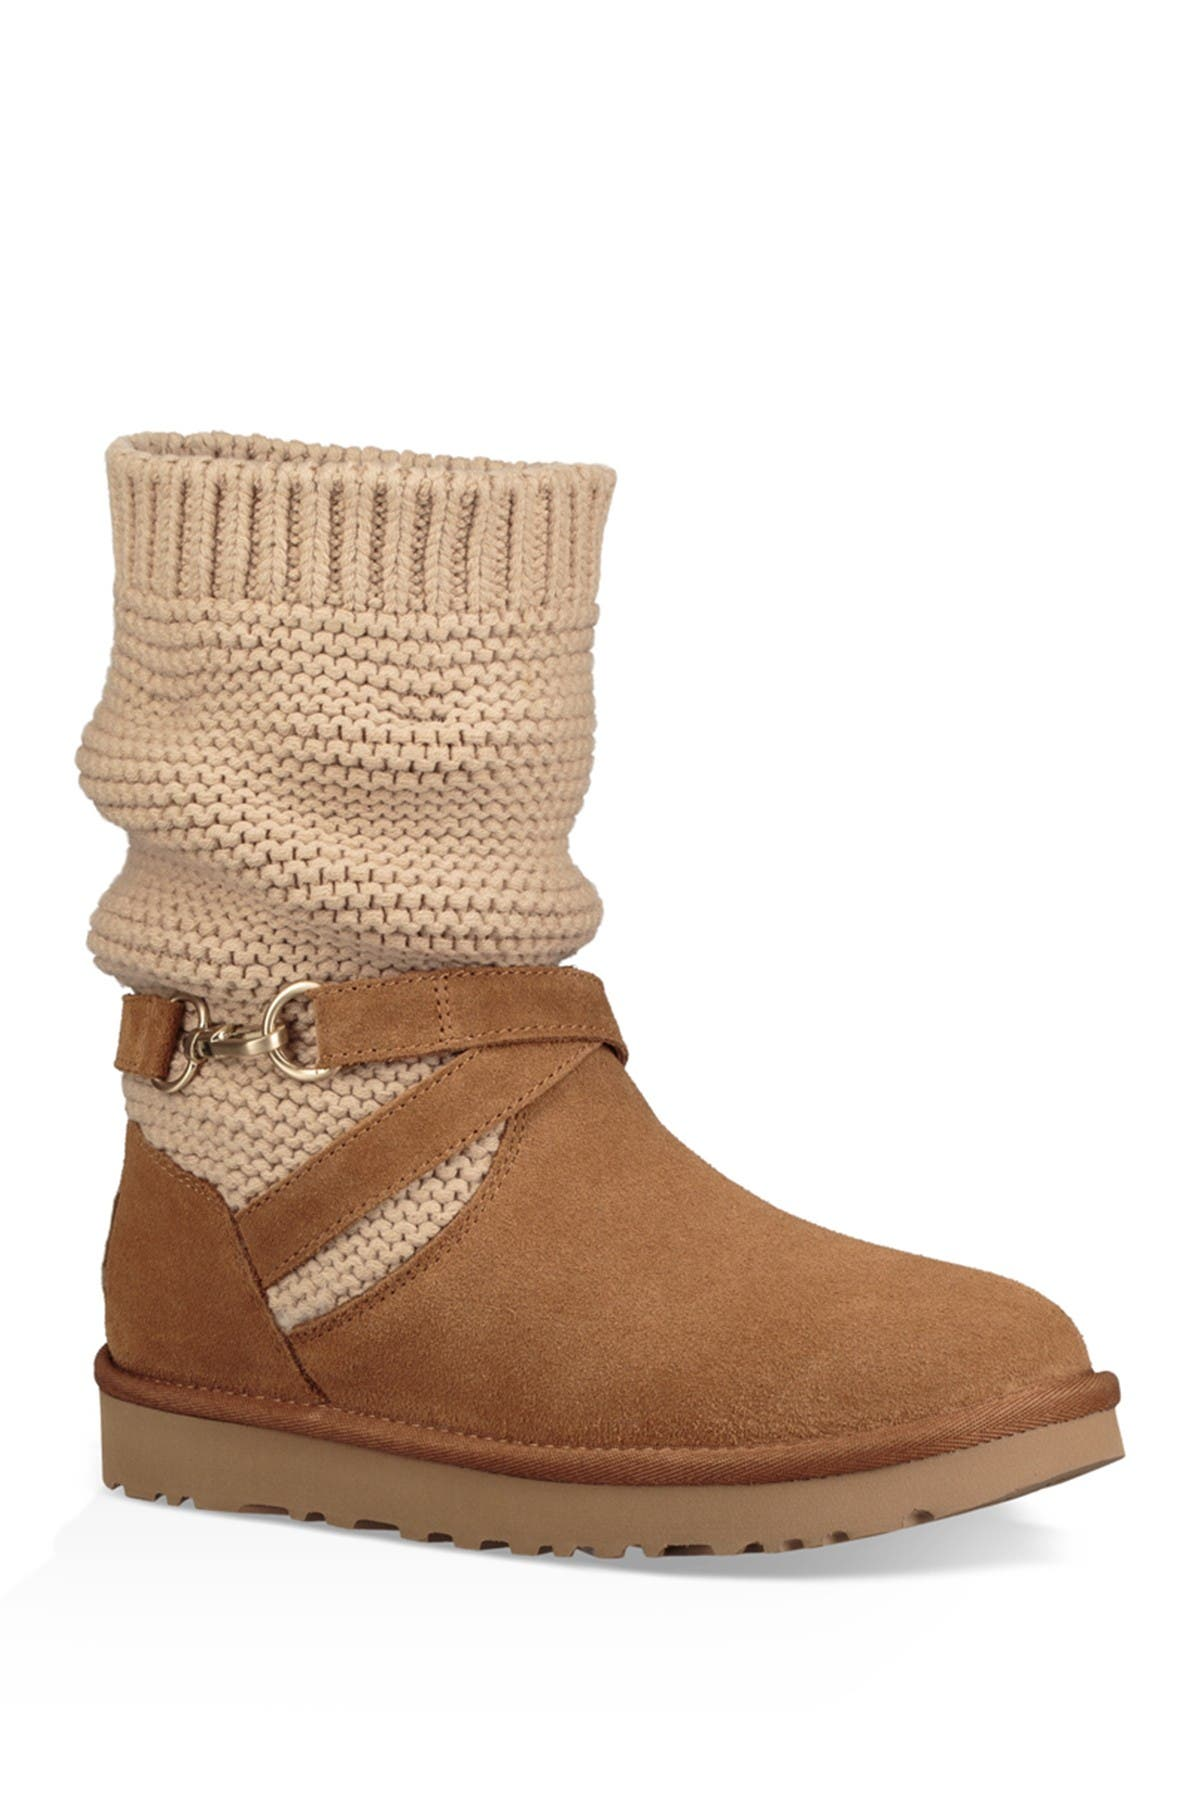 Image of UGG Purl Knit Suede Boot